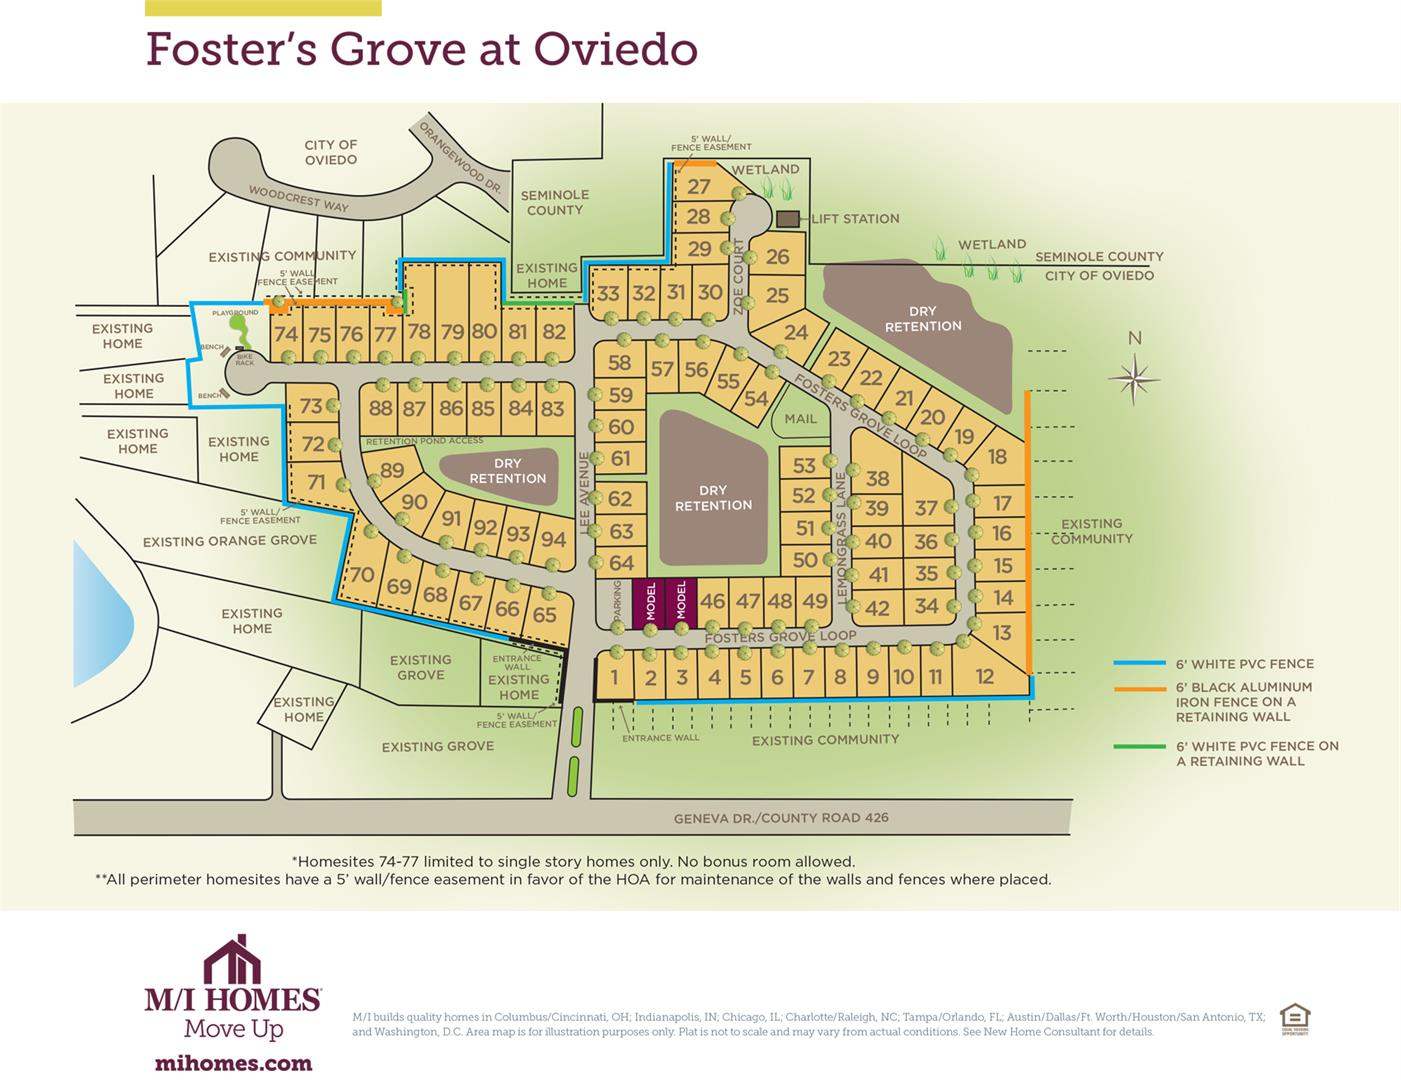 Foster's Grove at Oviedo in Chuluota, FL | Prices, Plans ... on cecil field florida map, longwood florida map, st. johns river florida map, united states florida map, naranja florida map, spring hill florida map, ferndale florida map, pine lakes florida map, zellwood florida map, lake hart florida map, north port florida map, east orlando florida map, altamonte florida map, oviedo florida map, windermere florida map, city of sunrise florida map, union park florida map, plymouth florida map, largo florida map, sharpes florida map,